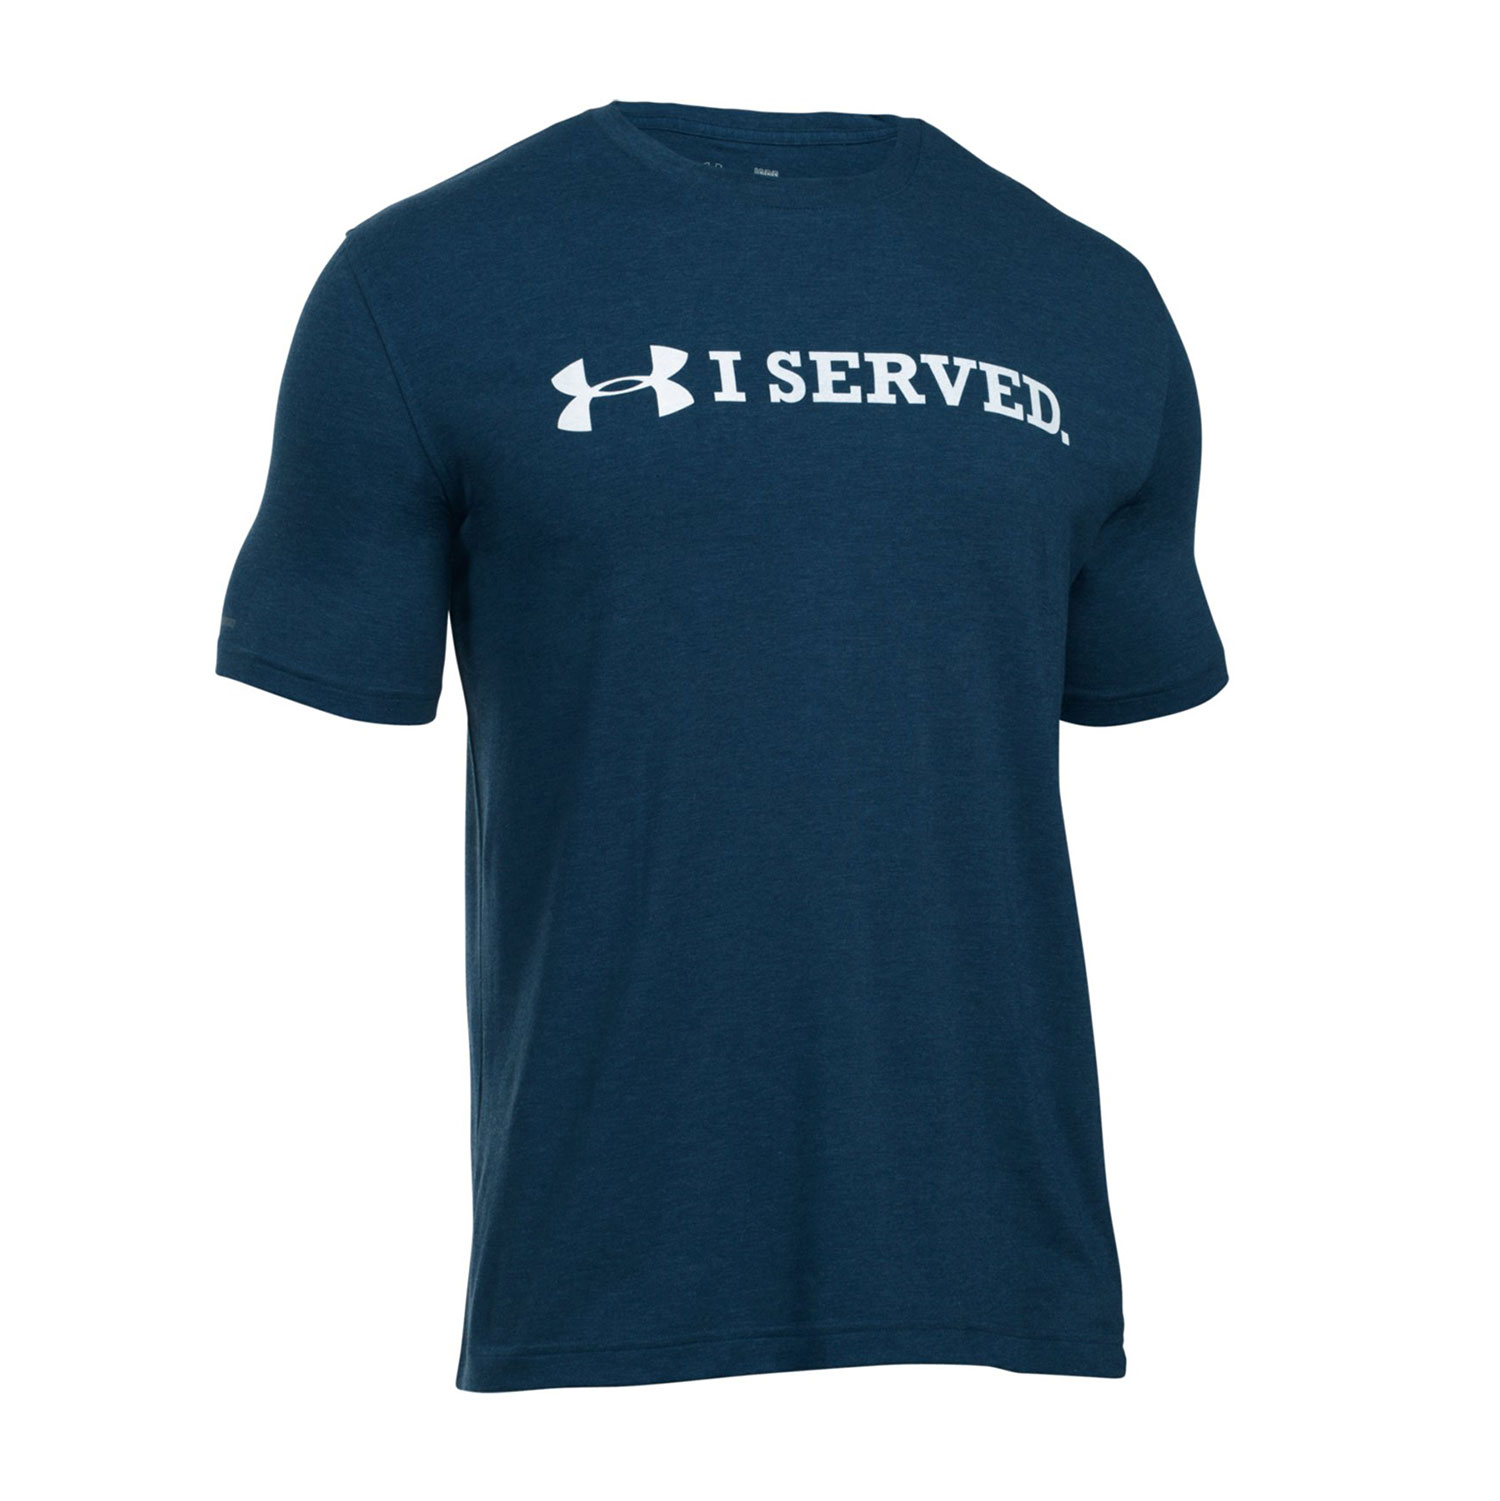 "Under Armour ""I Served"" T-Shirt"